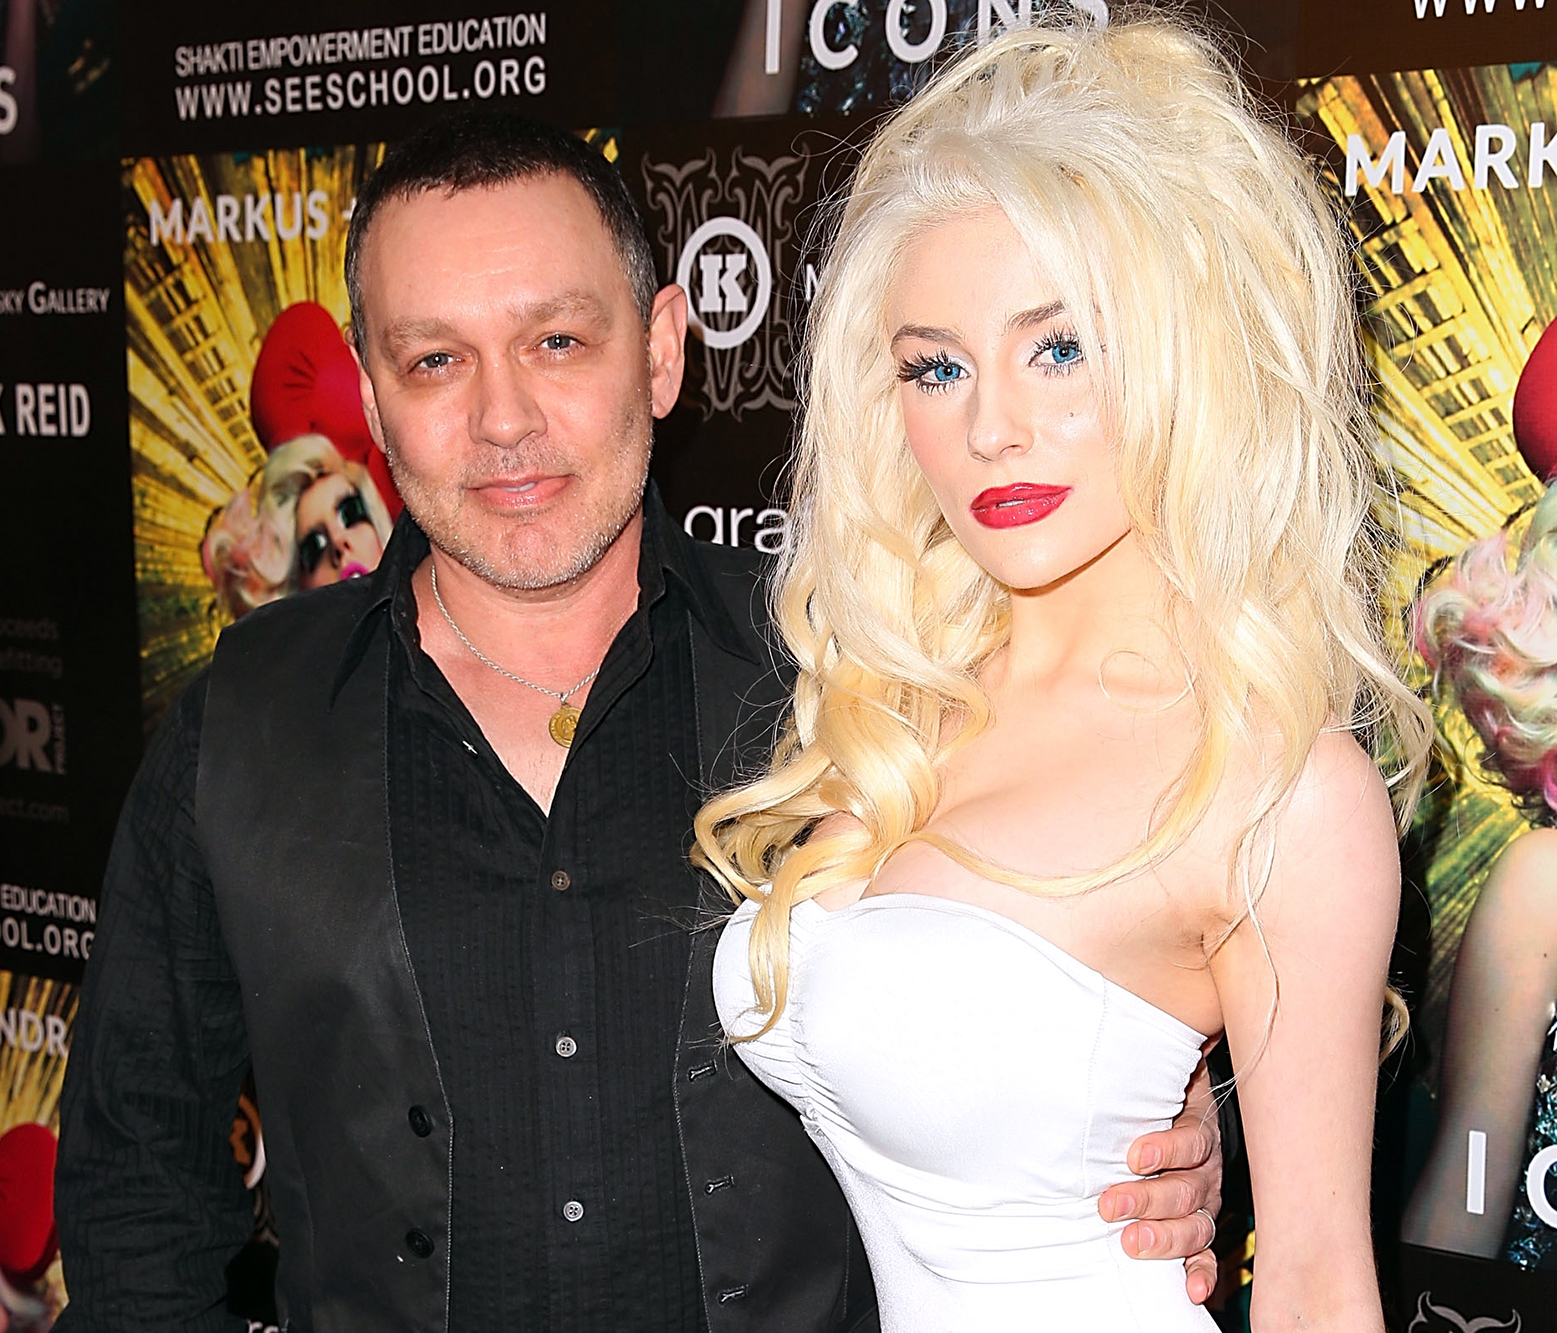 Courtney stodden and doug hutchison sex tape